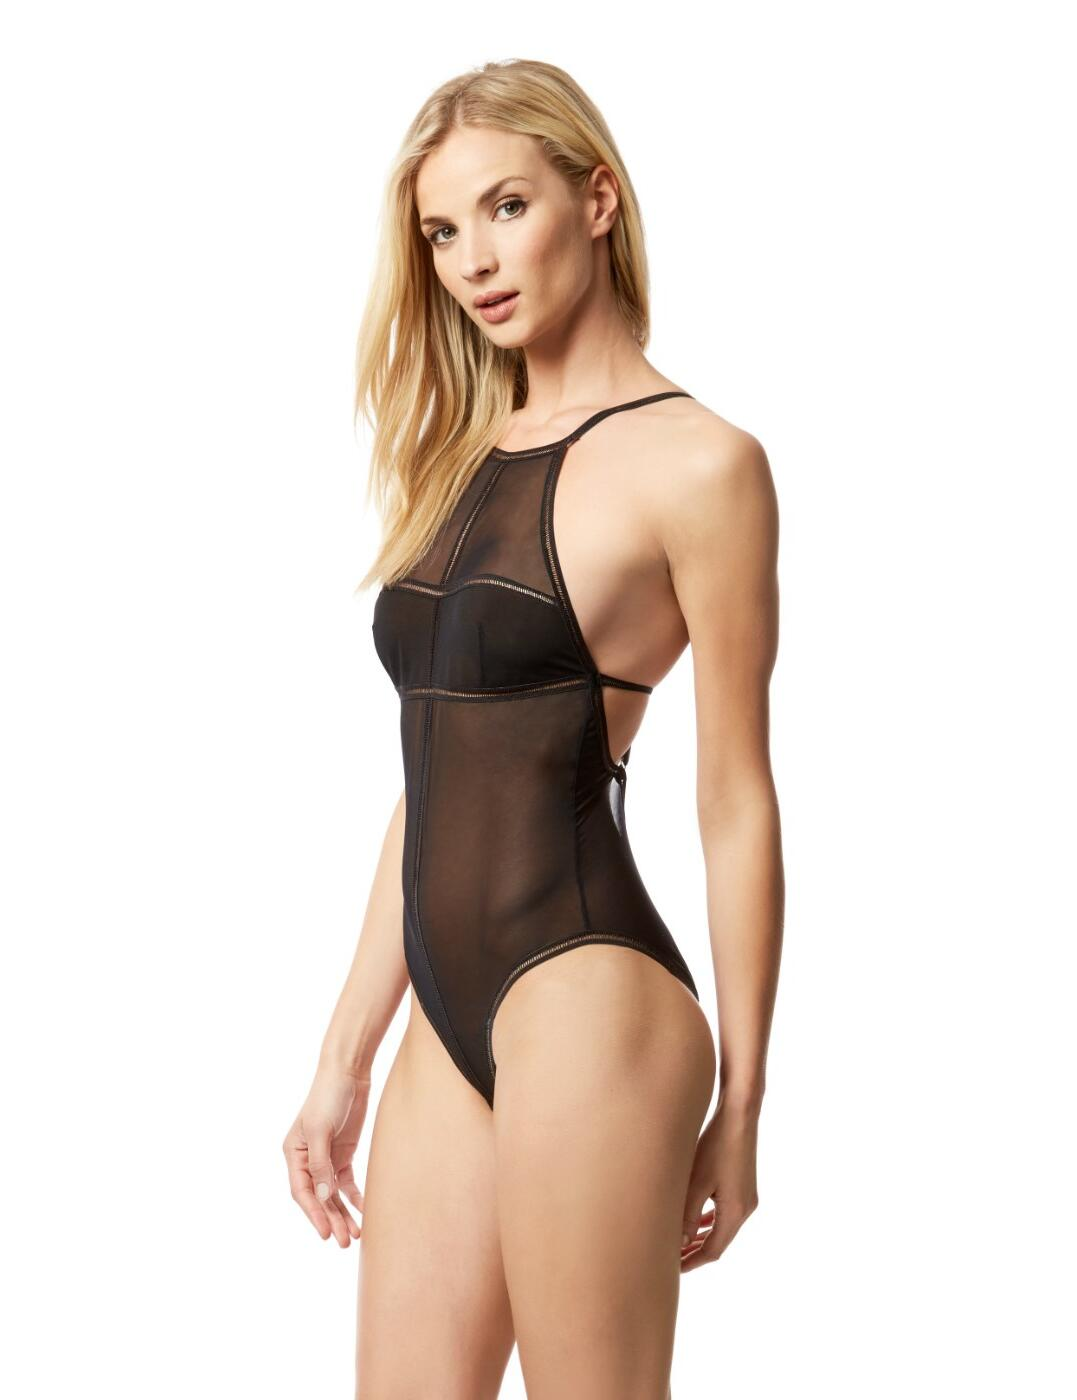 40158 Bluebella Lydia Body - 40158 Black